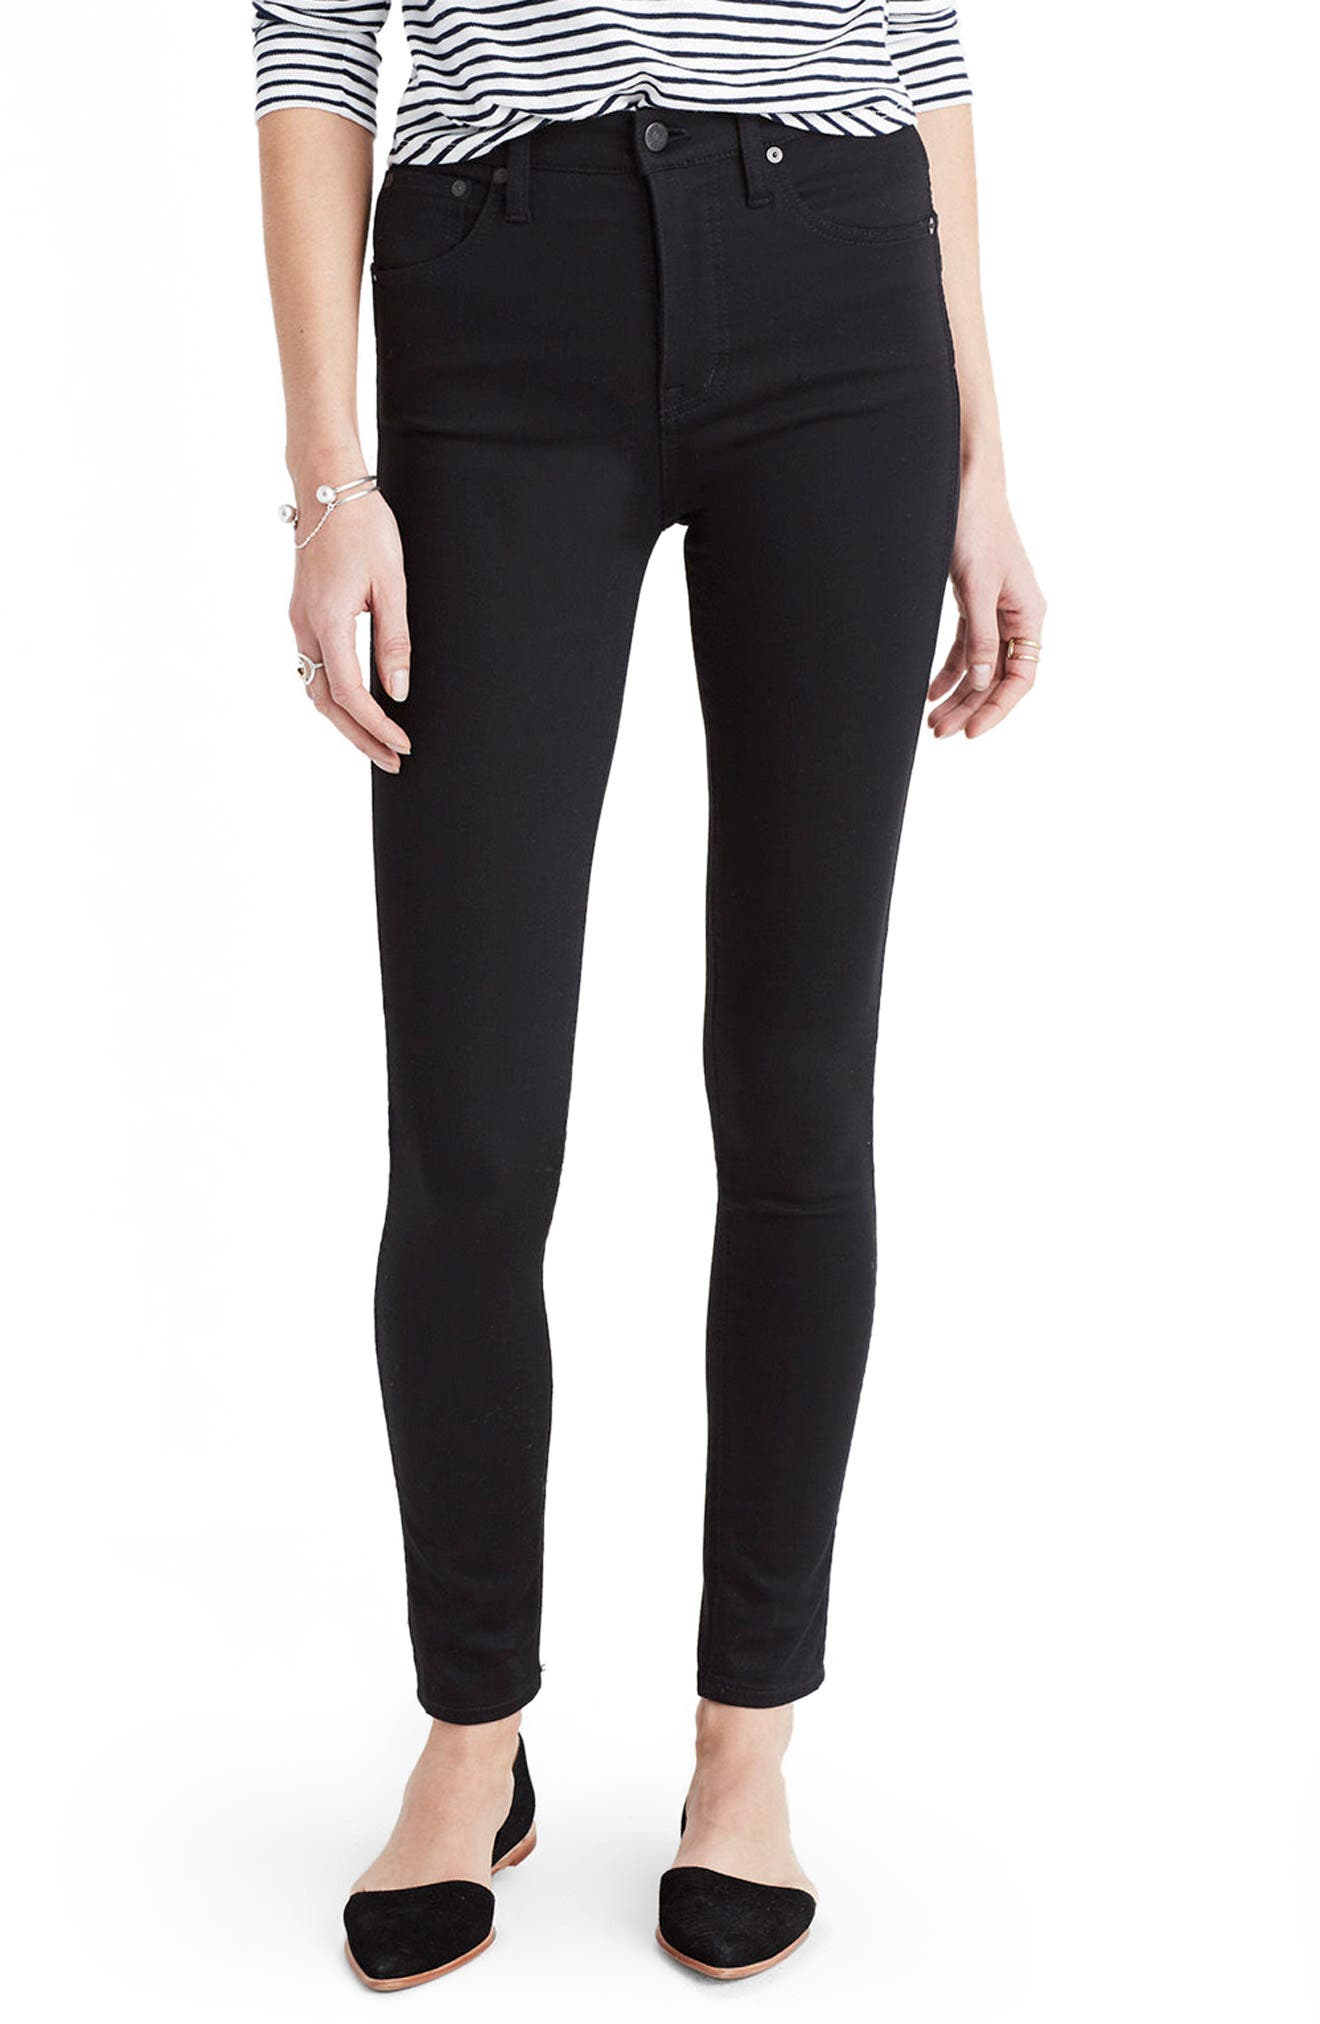 Women's Madewell 10-Inch High Rise Skinny Jeans